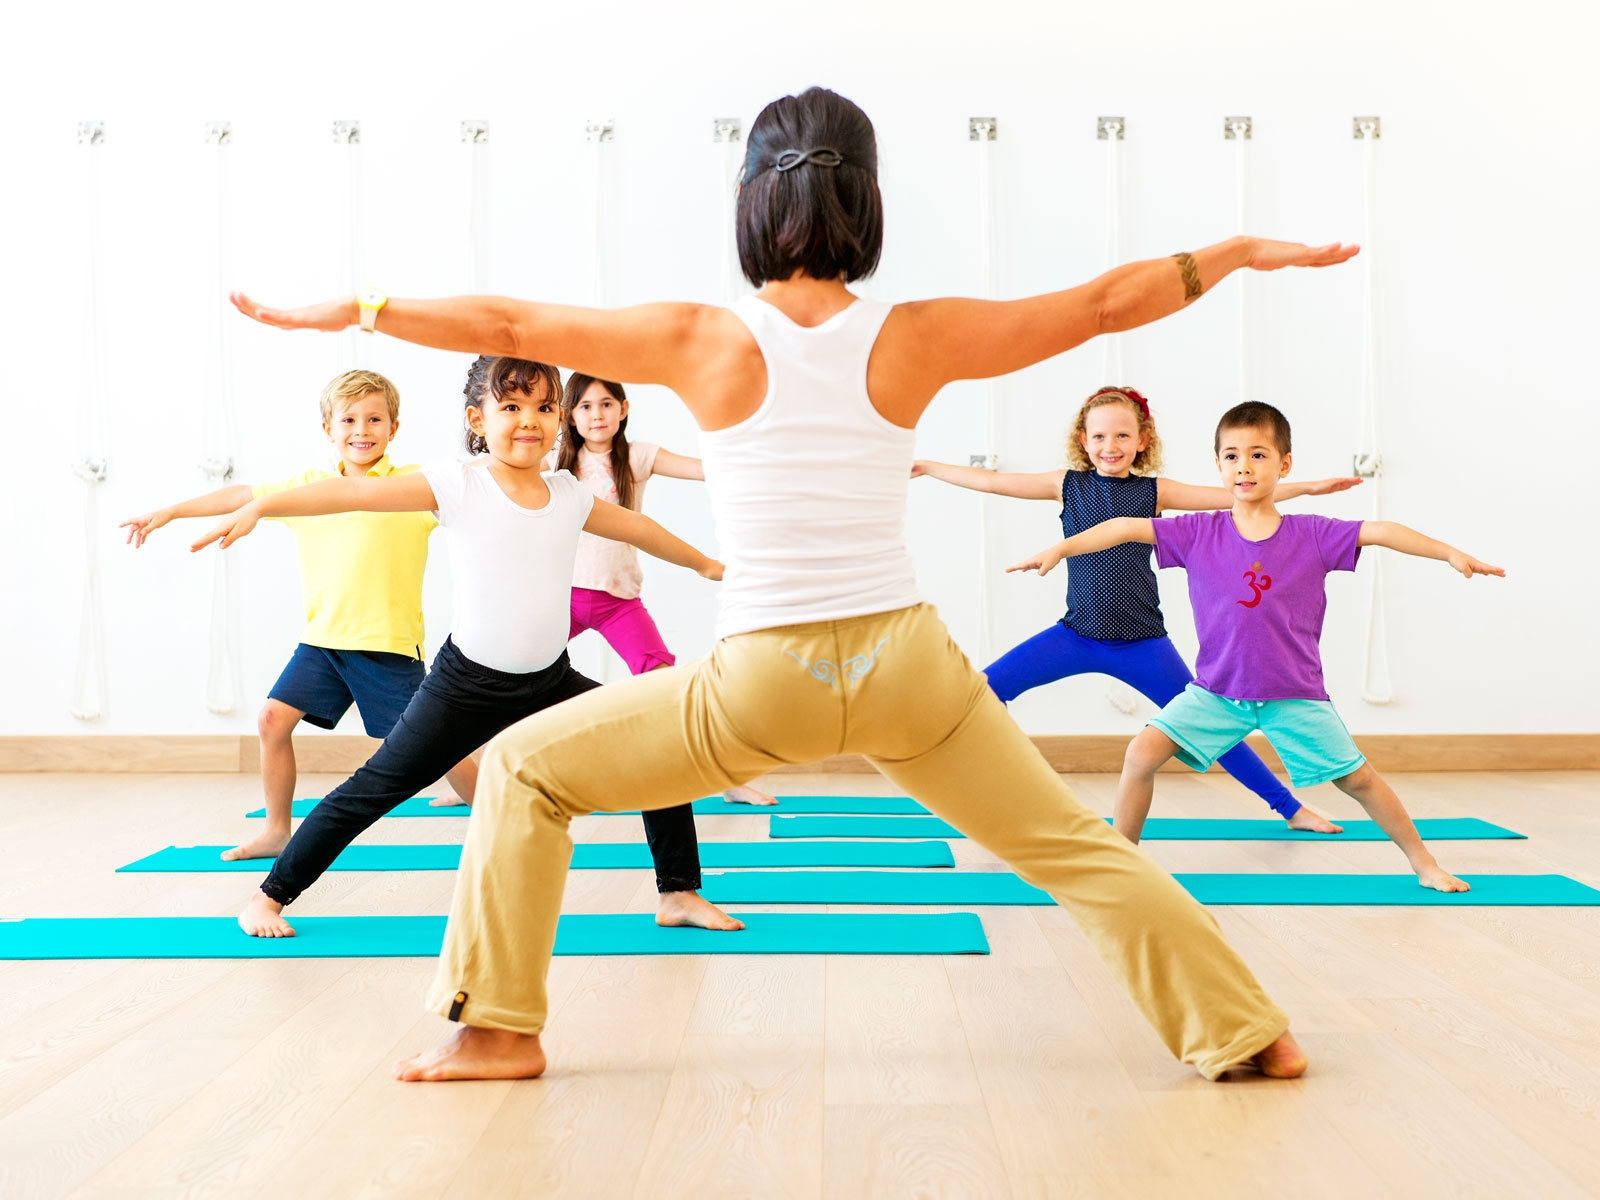 5 reasons why Yoga should become a part of the school curriculum